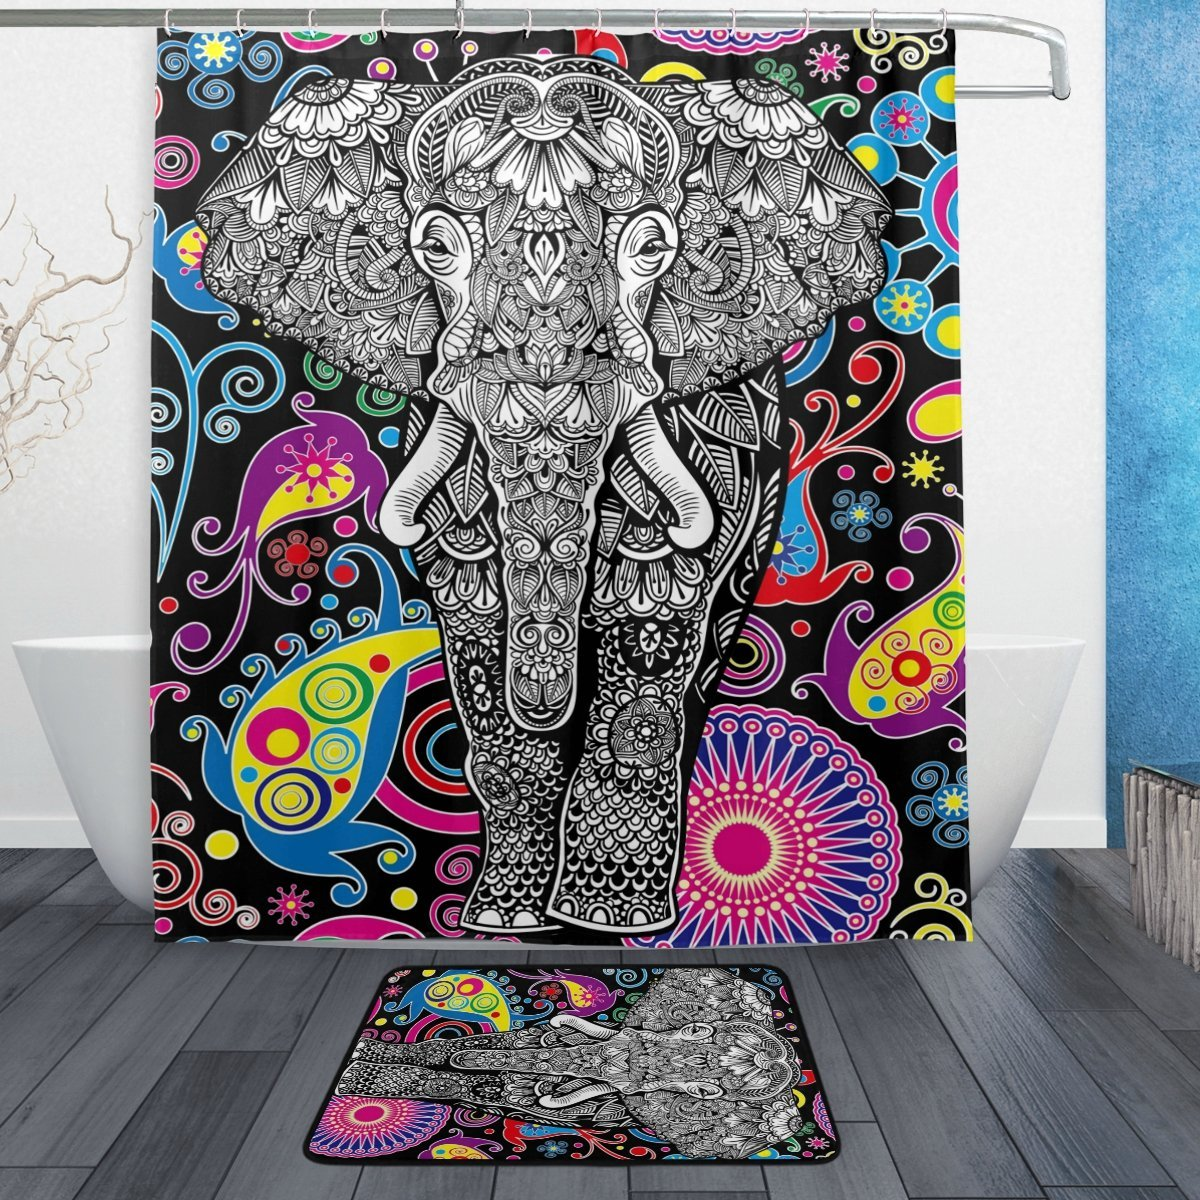 Exotic Ethnic Elephant Shower Curtain and Mat Set, Paisley Tribal Indian Waterproof Fabric Bathroom Curtain